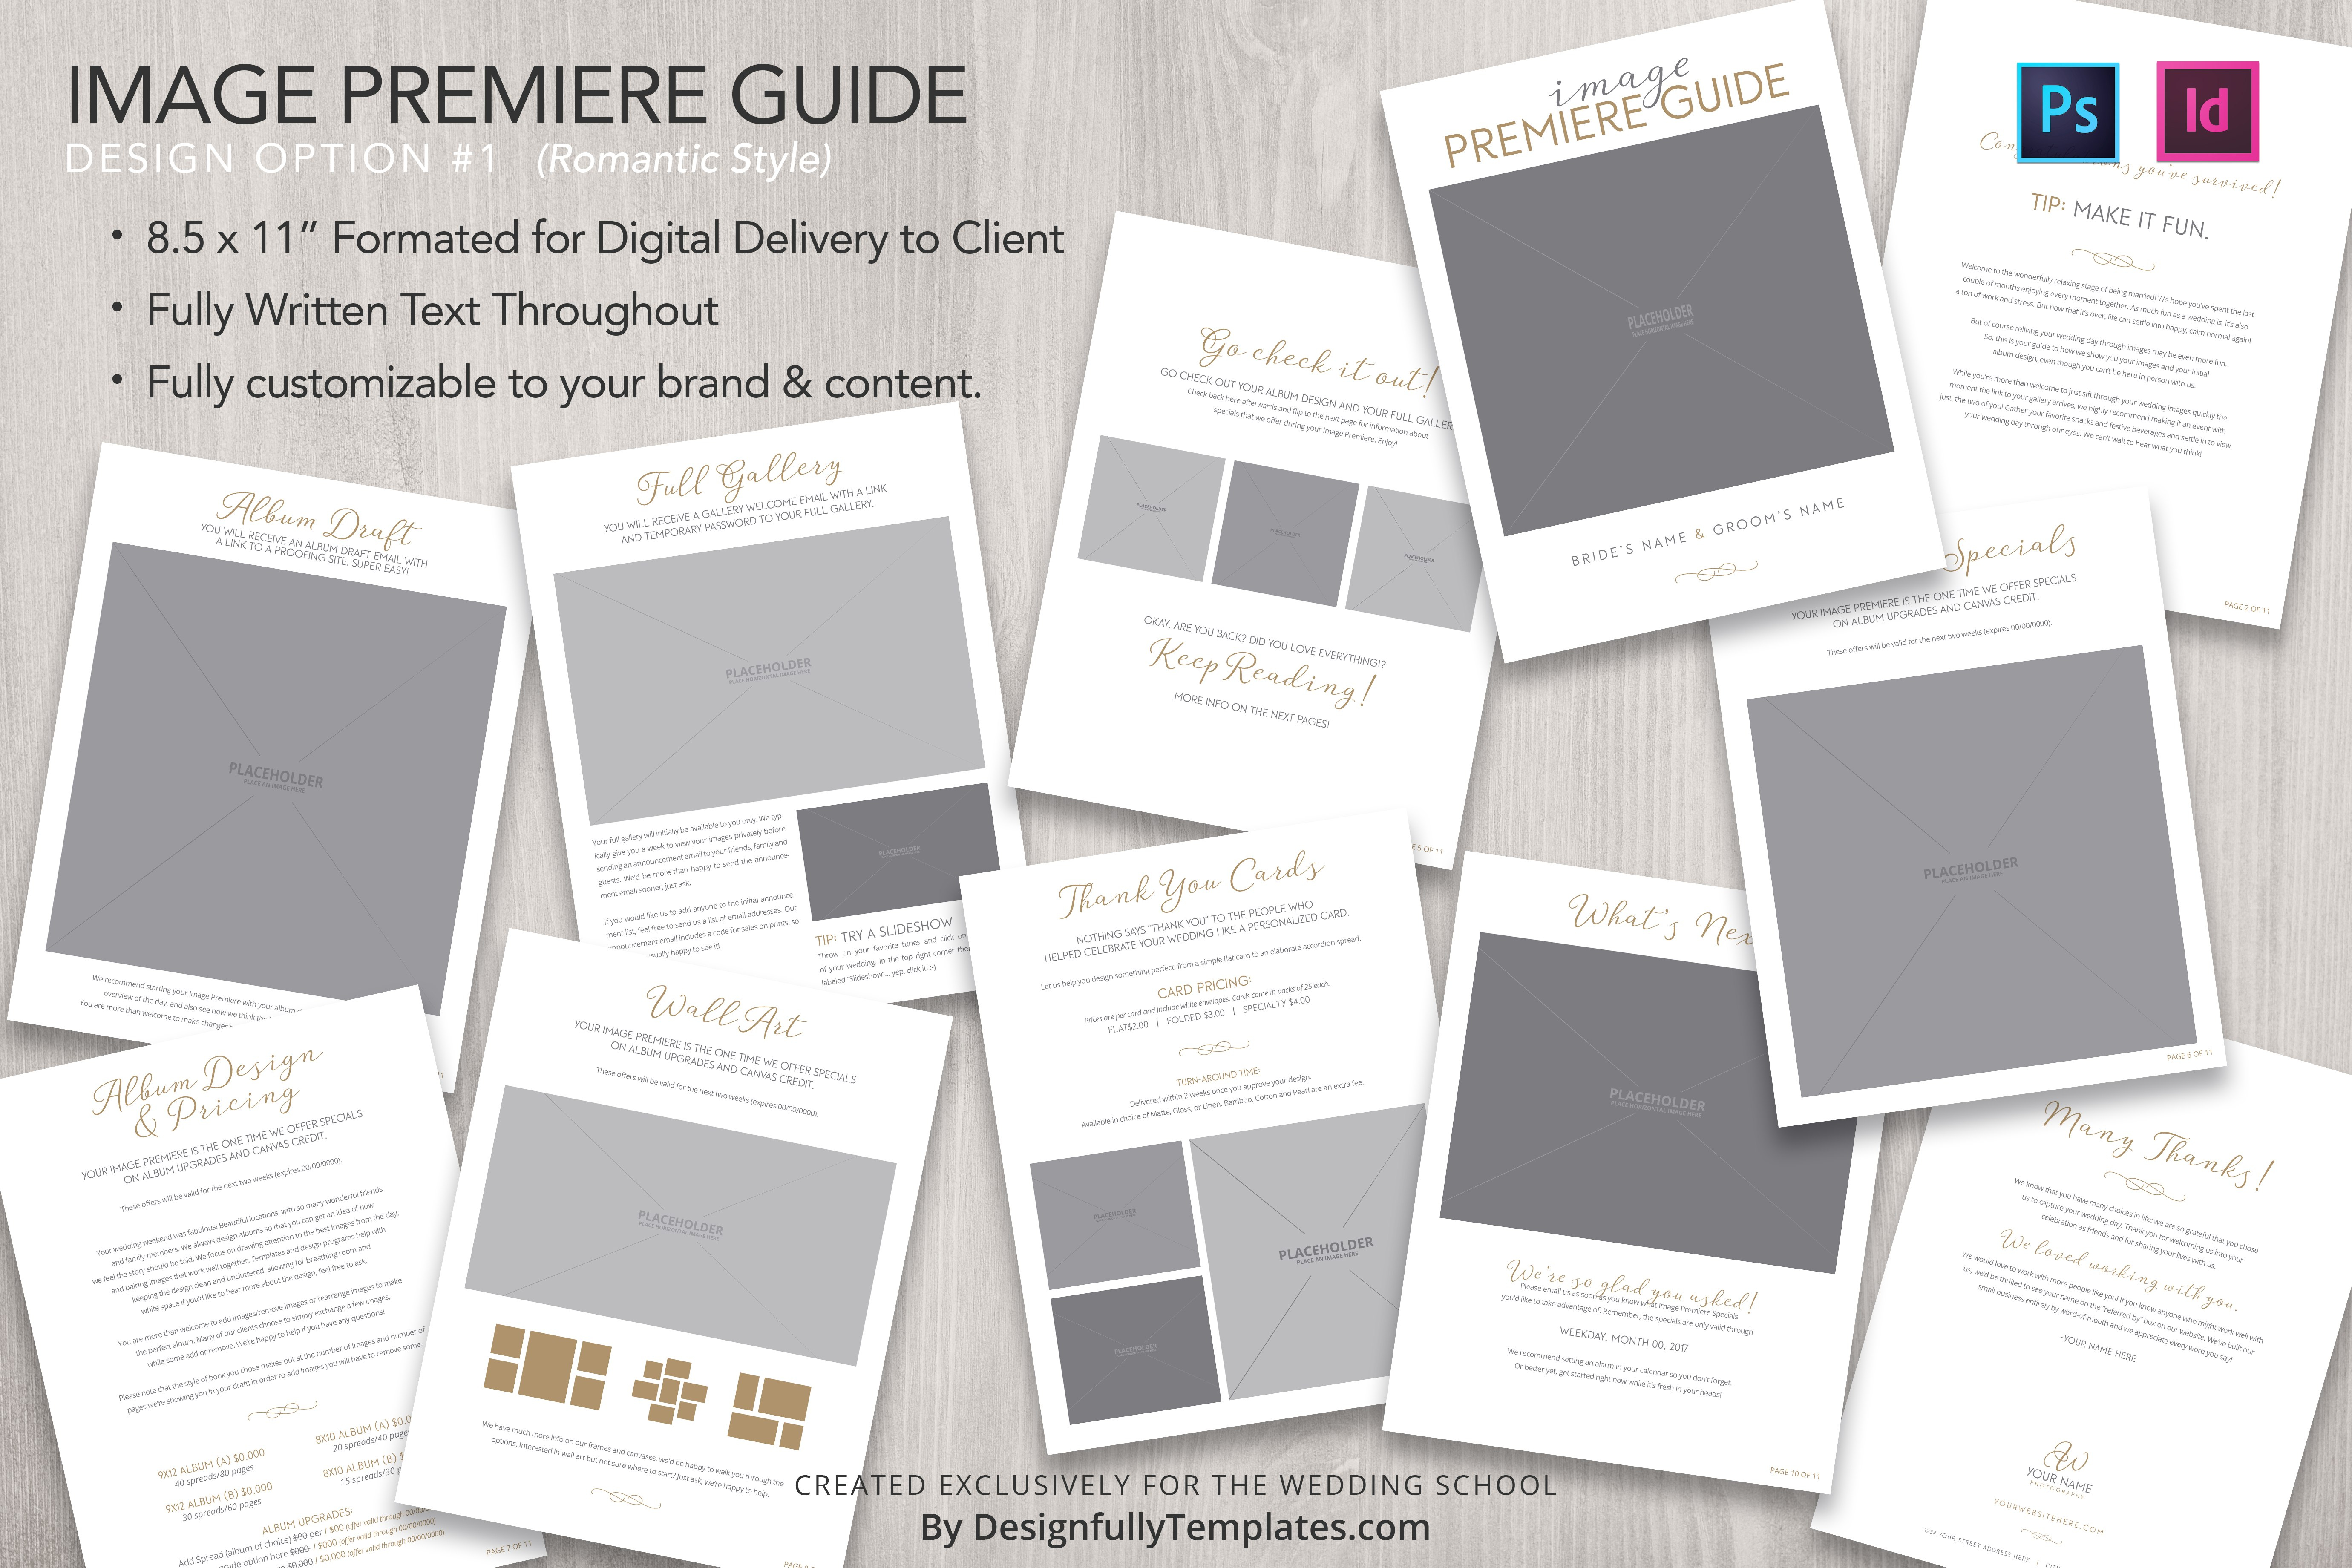 Templates For Wedding Photographers Bundle  The Wedding School Regarding Wedding Photography Terms And Conditions Template